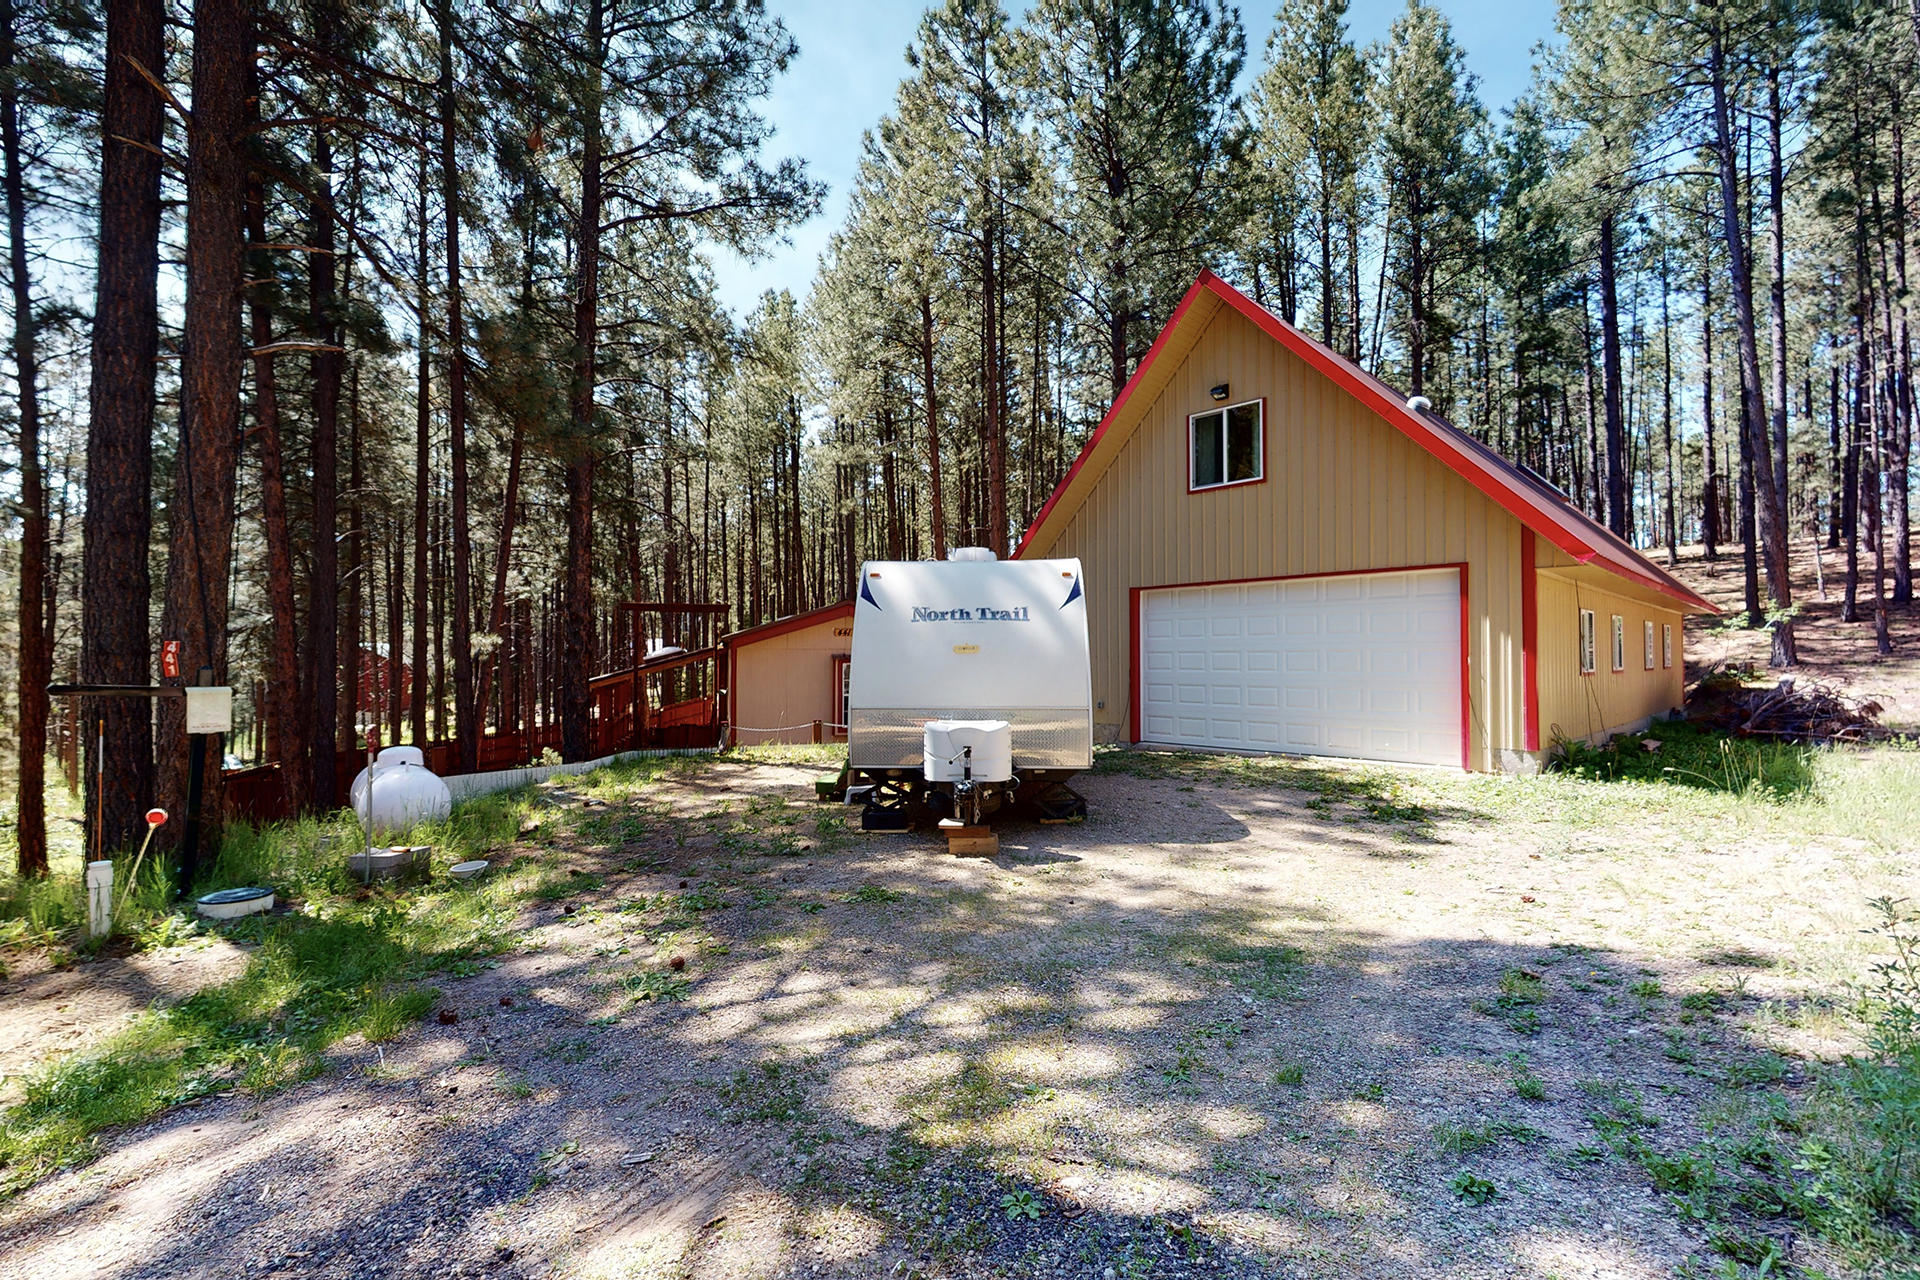 Are you looking for a place that provides serenity yet lots of activities close-by?  Look no further!  This home in Jemez Springs is literally a wildlife Mecca! Right down NM-4 you'll find Elk Viewing and Las Conchas Trail for hiking and viewing wildflower habitat!  Also right down NM 4 is the Valles Caldera National Preserve, a ski-walking area and the Bandelier National Monument. Now get ready to relax in your remodeled manufactured home sitting on a 1 acre lot.  Relax on the front Trex porch and enjoy the peacefulness. 4-bay 26 x 50 foot finished dream garage w/ versatile space on second floor for studio/office w/private balcony. Property Overview - Nicely remodeled manufactured home on a permanent foundation occupying 1 acre. New flooring. * (See full description in MLS Documents